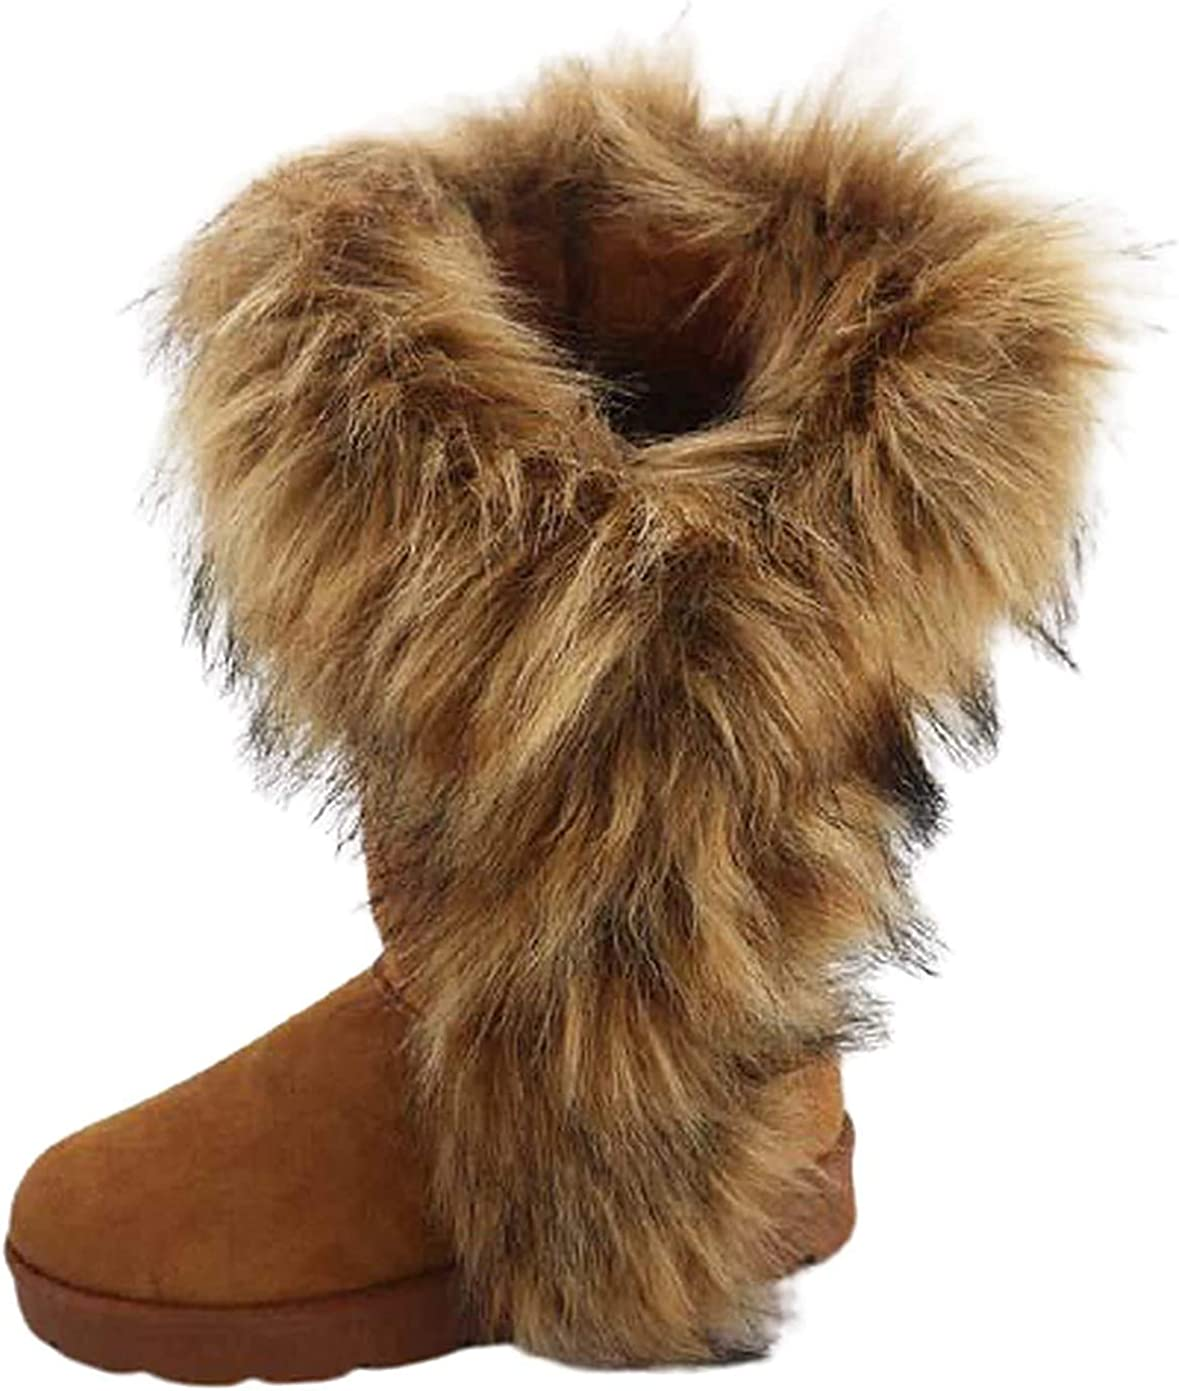 Pazzle Ada Stylish Womens Snow Boots Mid Calf Ankle Boots Faux Fur Tassel Shoes